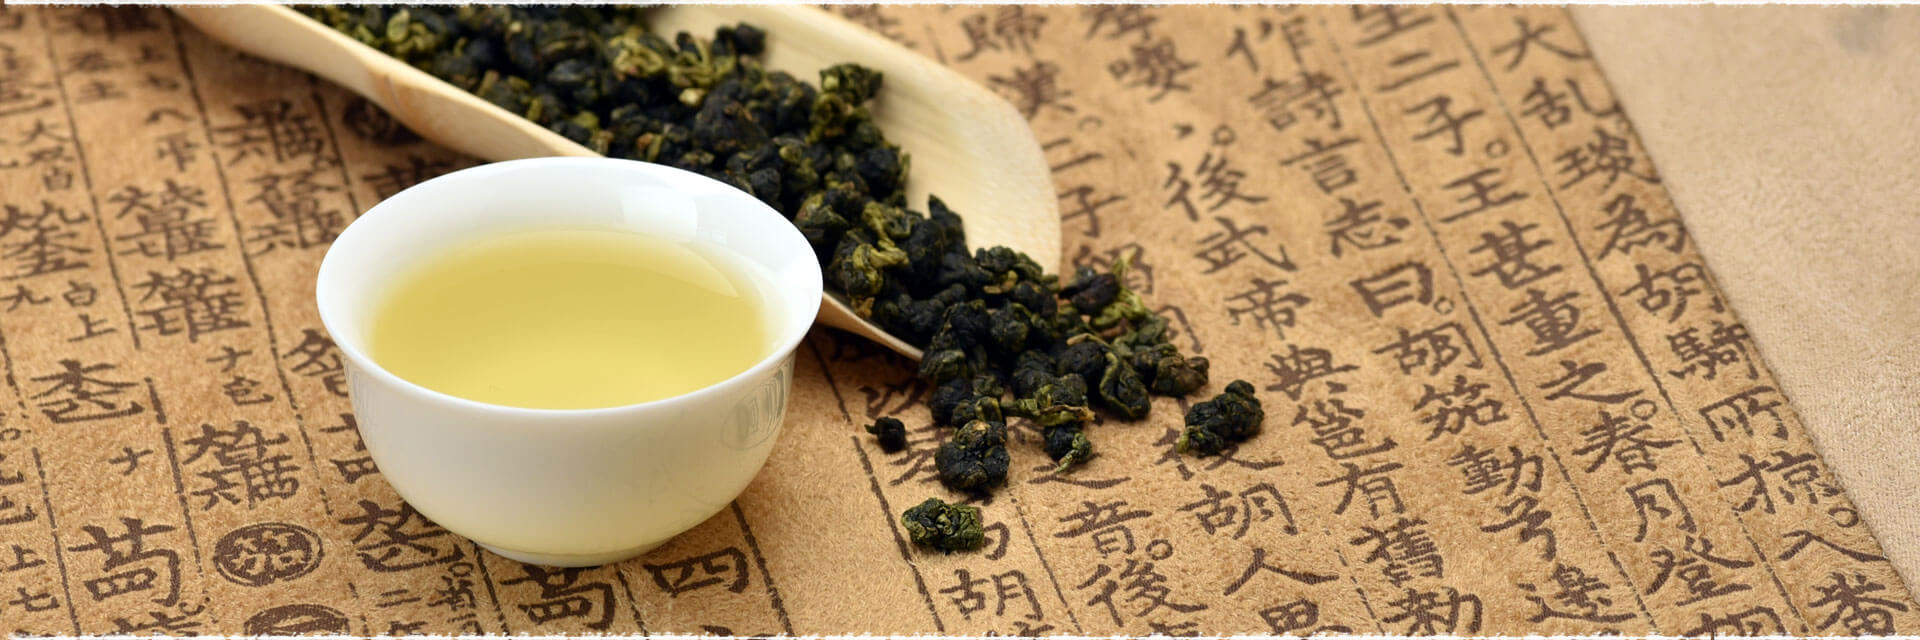 Chinese Tea History Part Ⅳ – Oolong Tea History